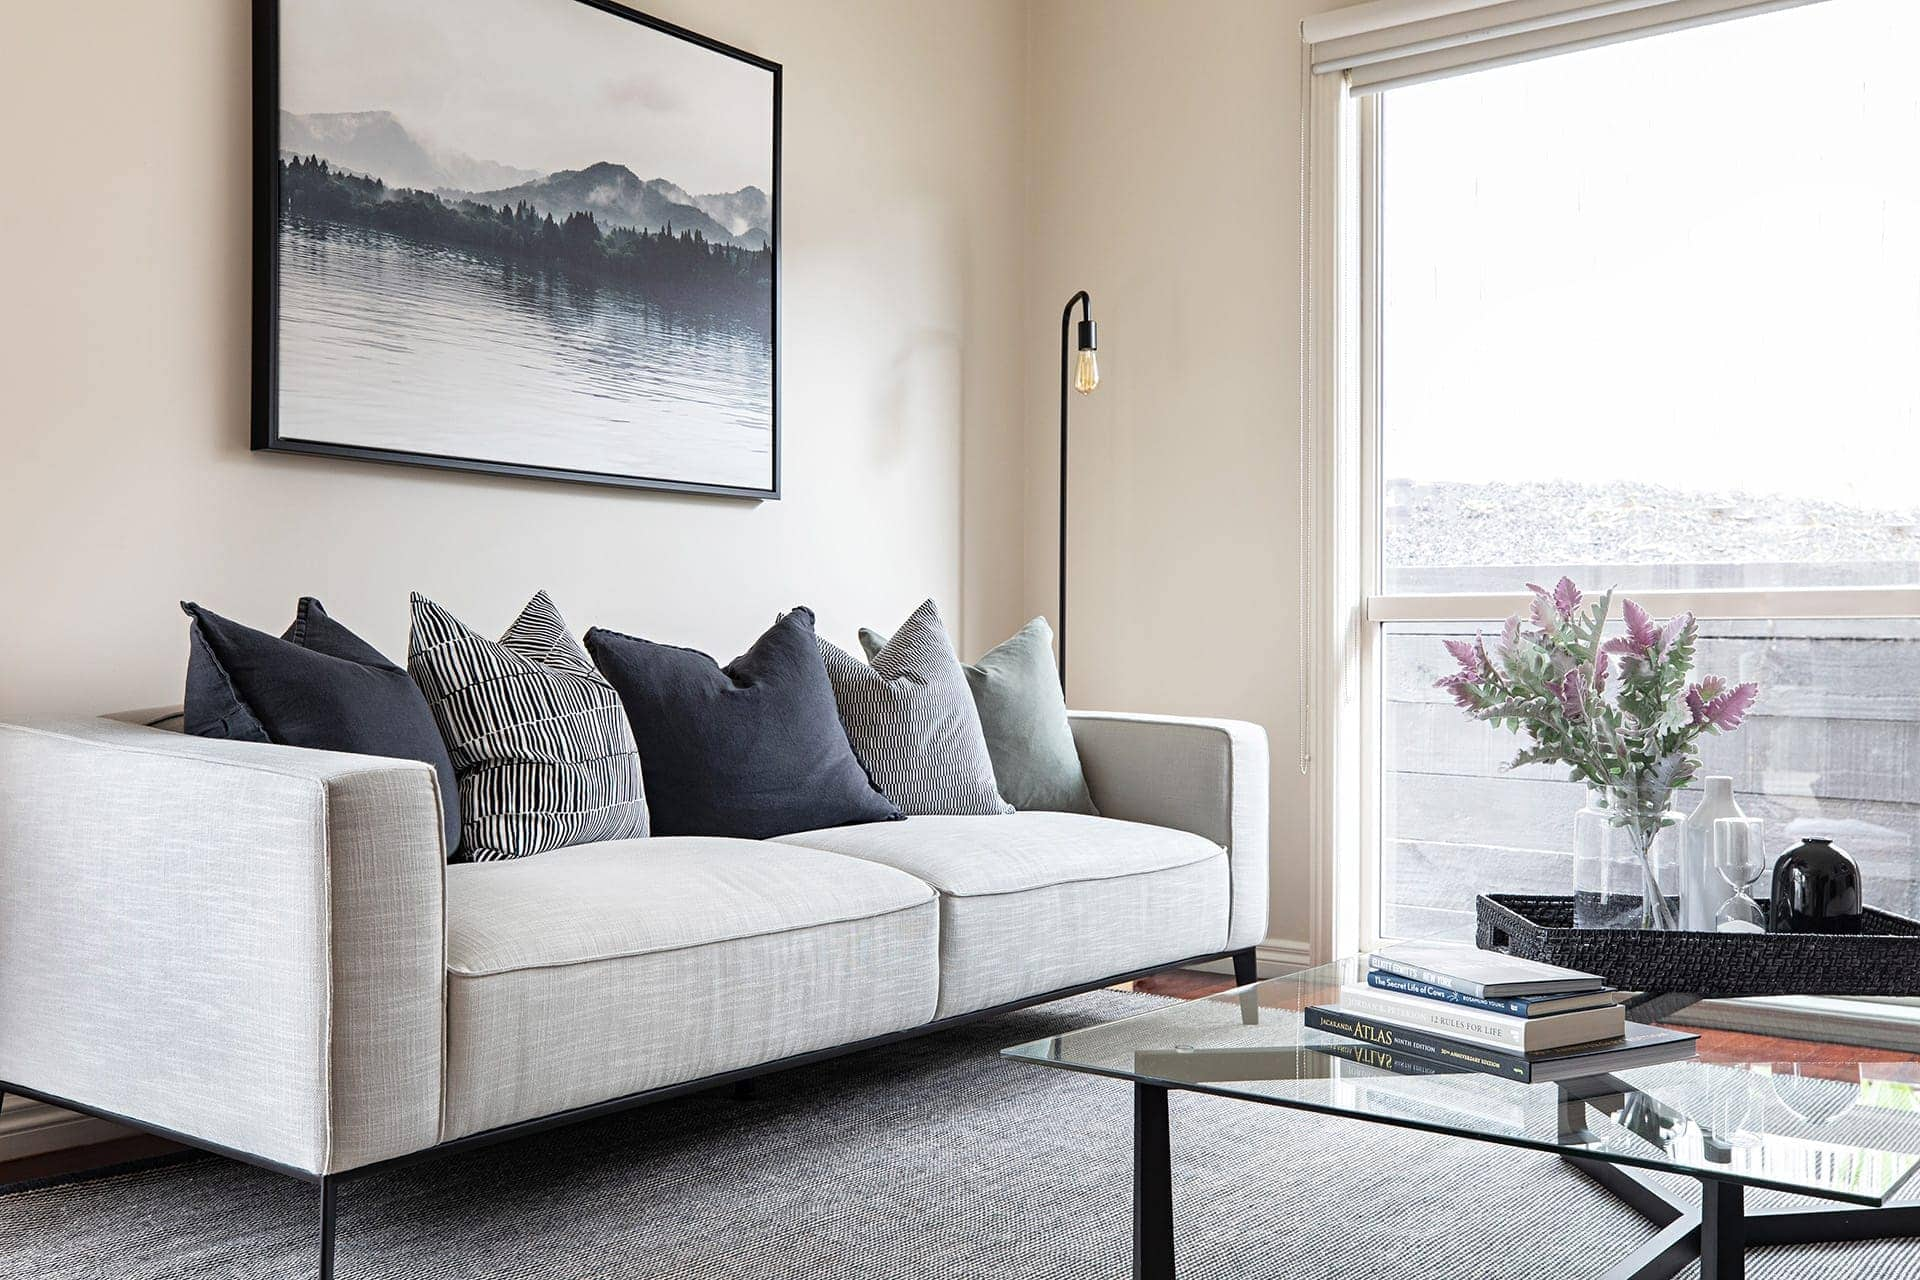 tlc interiors melbourne interior designer scandinavian living room with grey sofa and green cushions